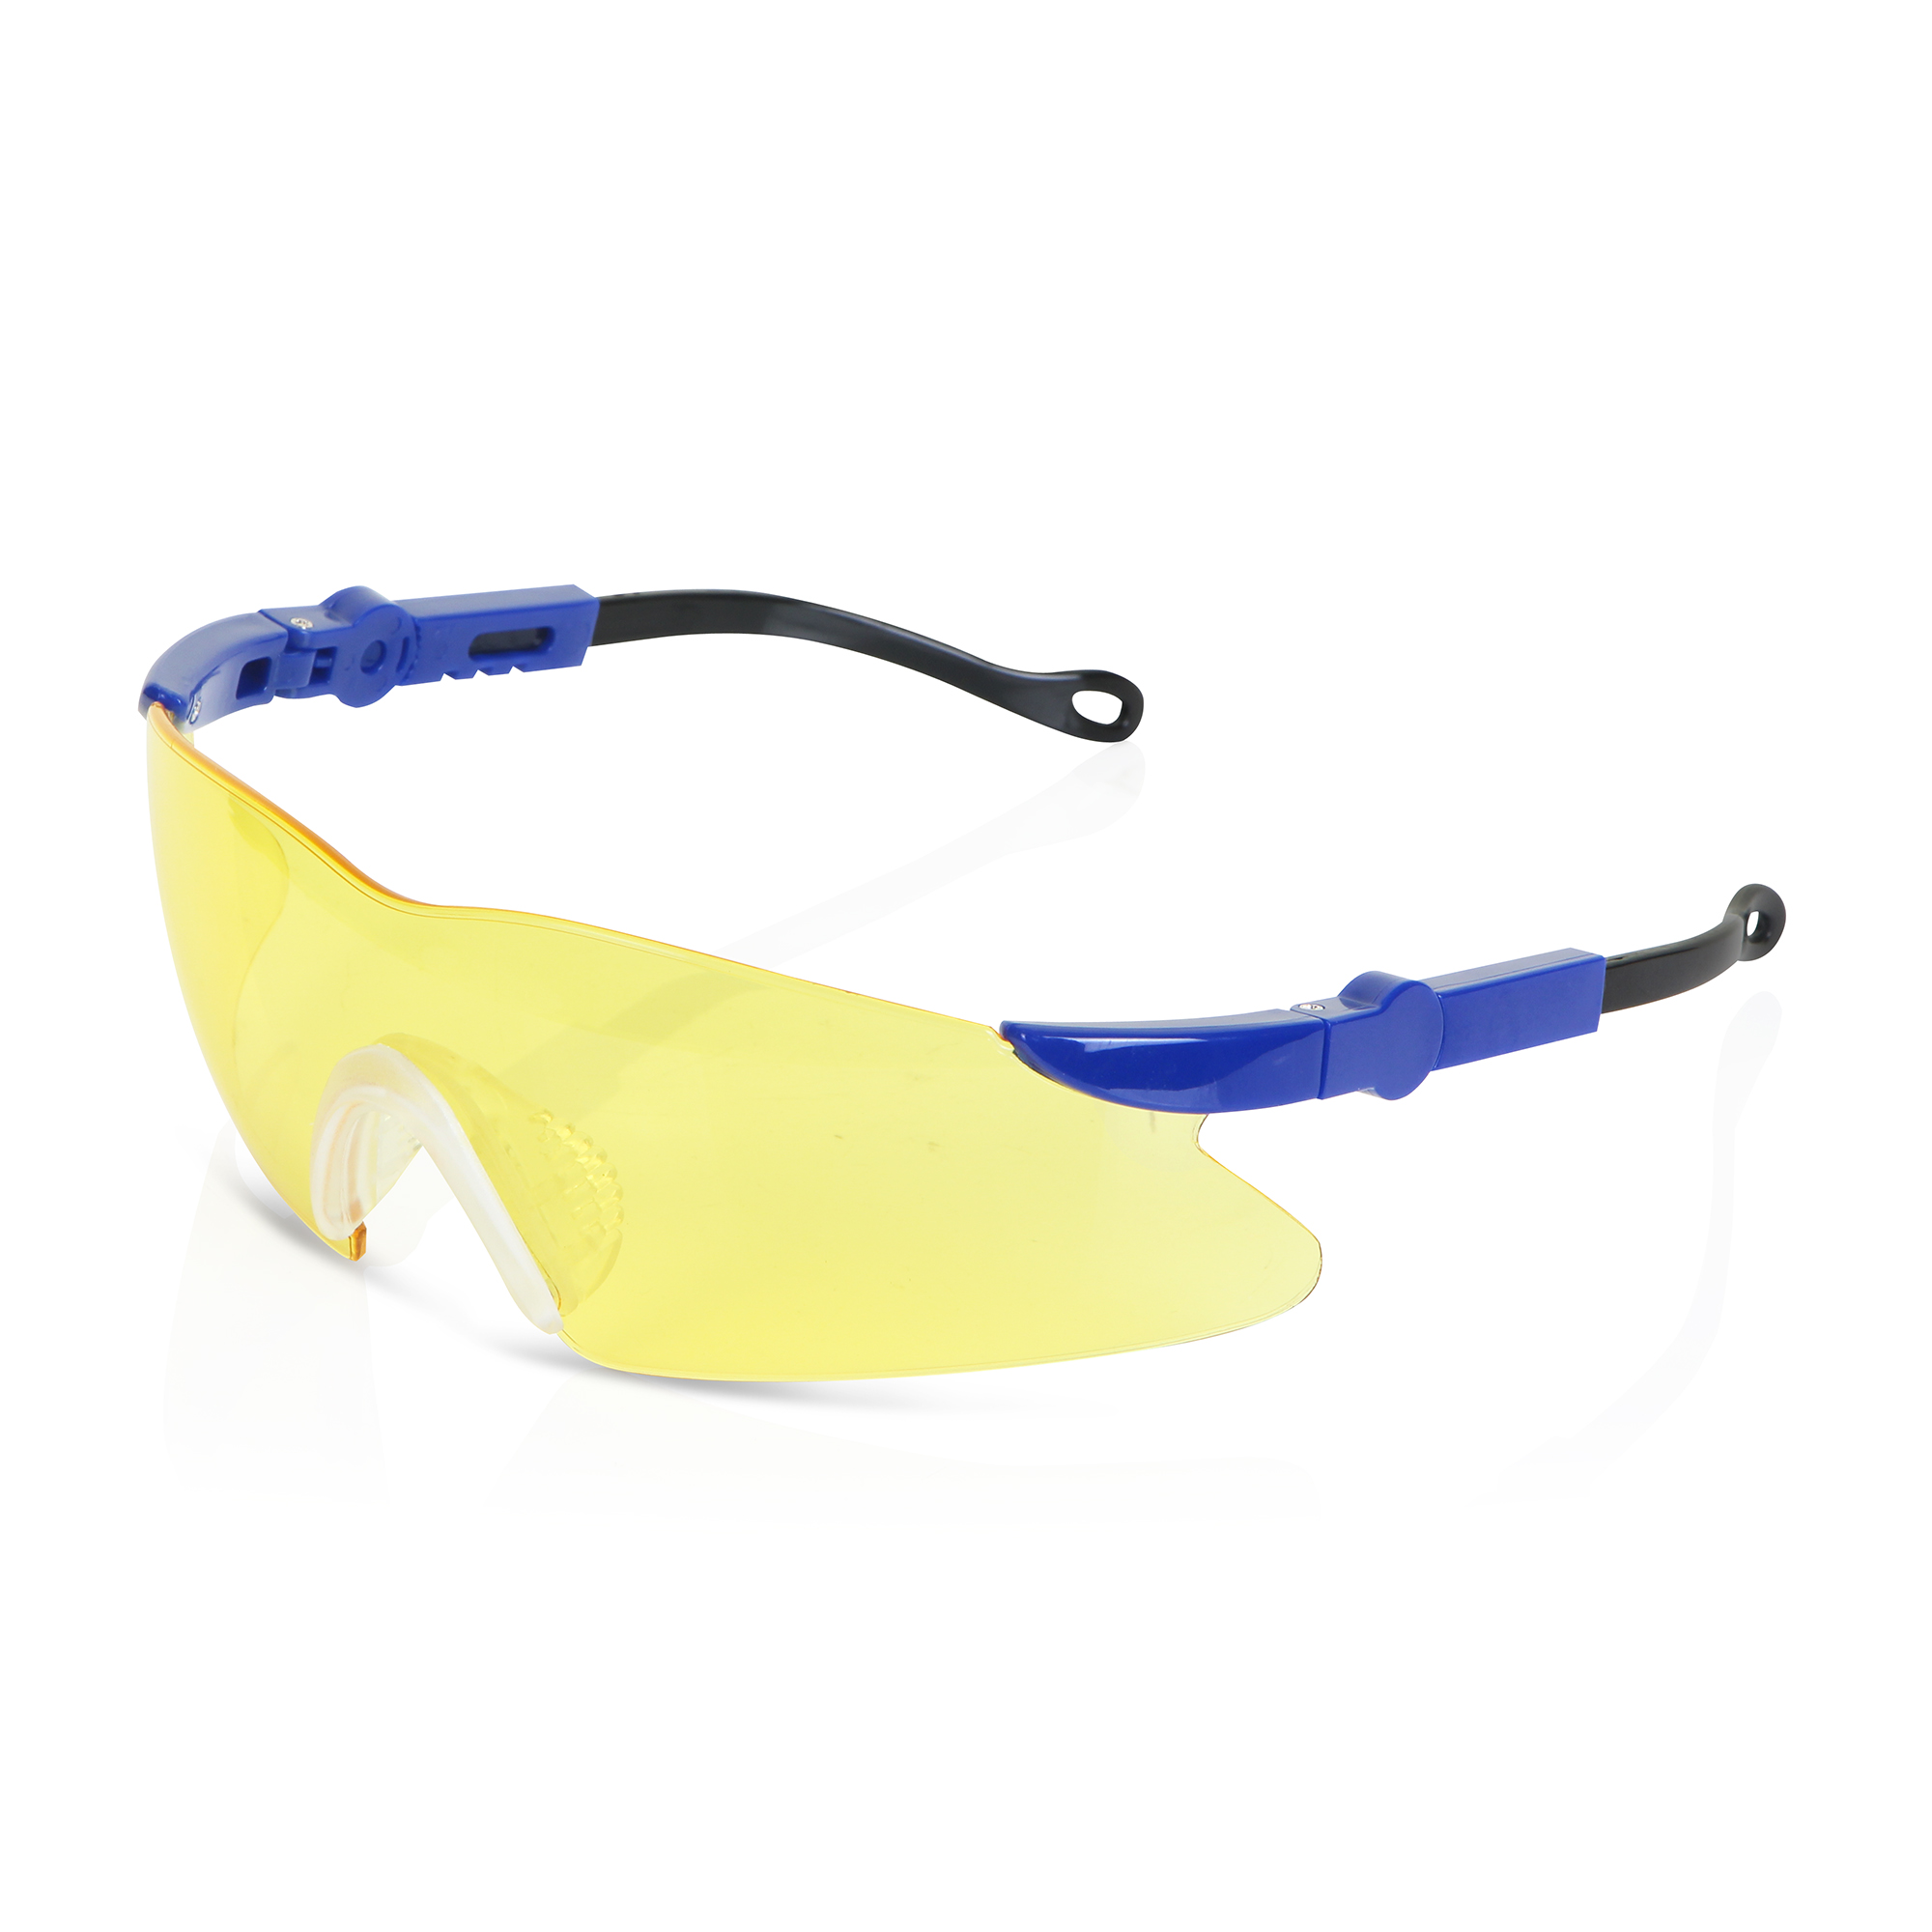 B-Brand Texas Safety Spectacles with Adjustable Side Arms Yellow Ref BBTXS2Y * Up to 3 Day Leadtime*